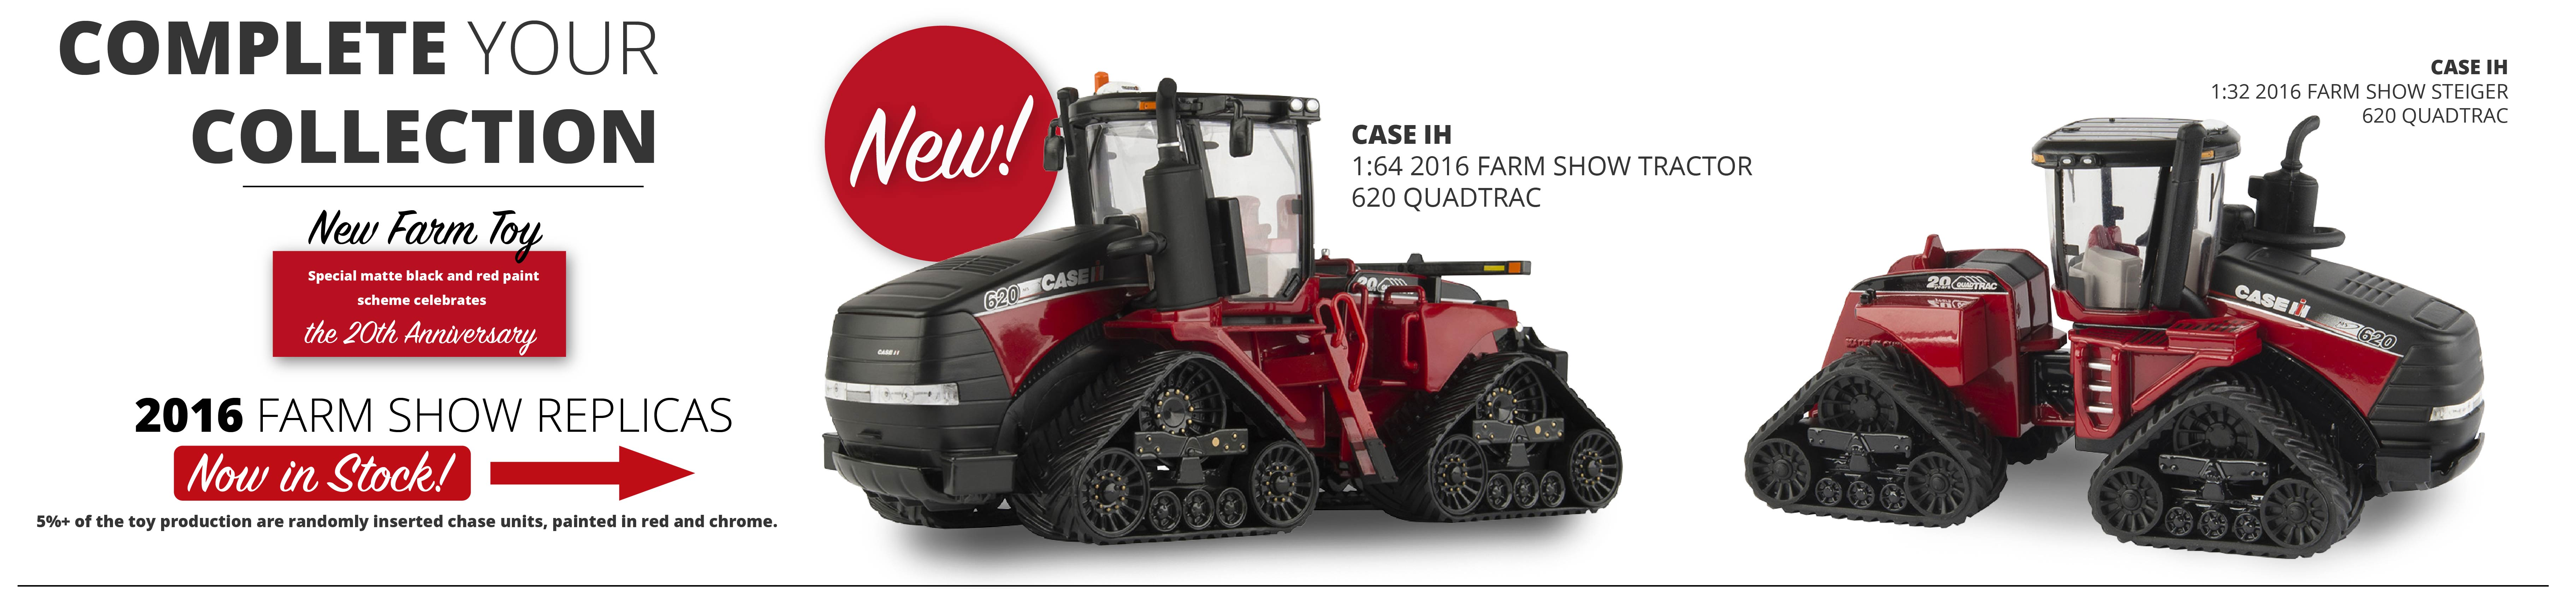 New Farm Toy! Complete Your Collection!